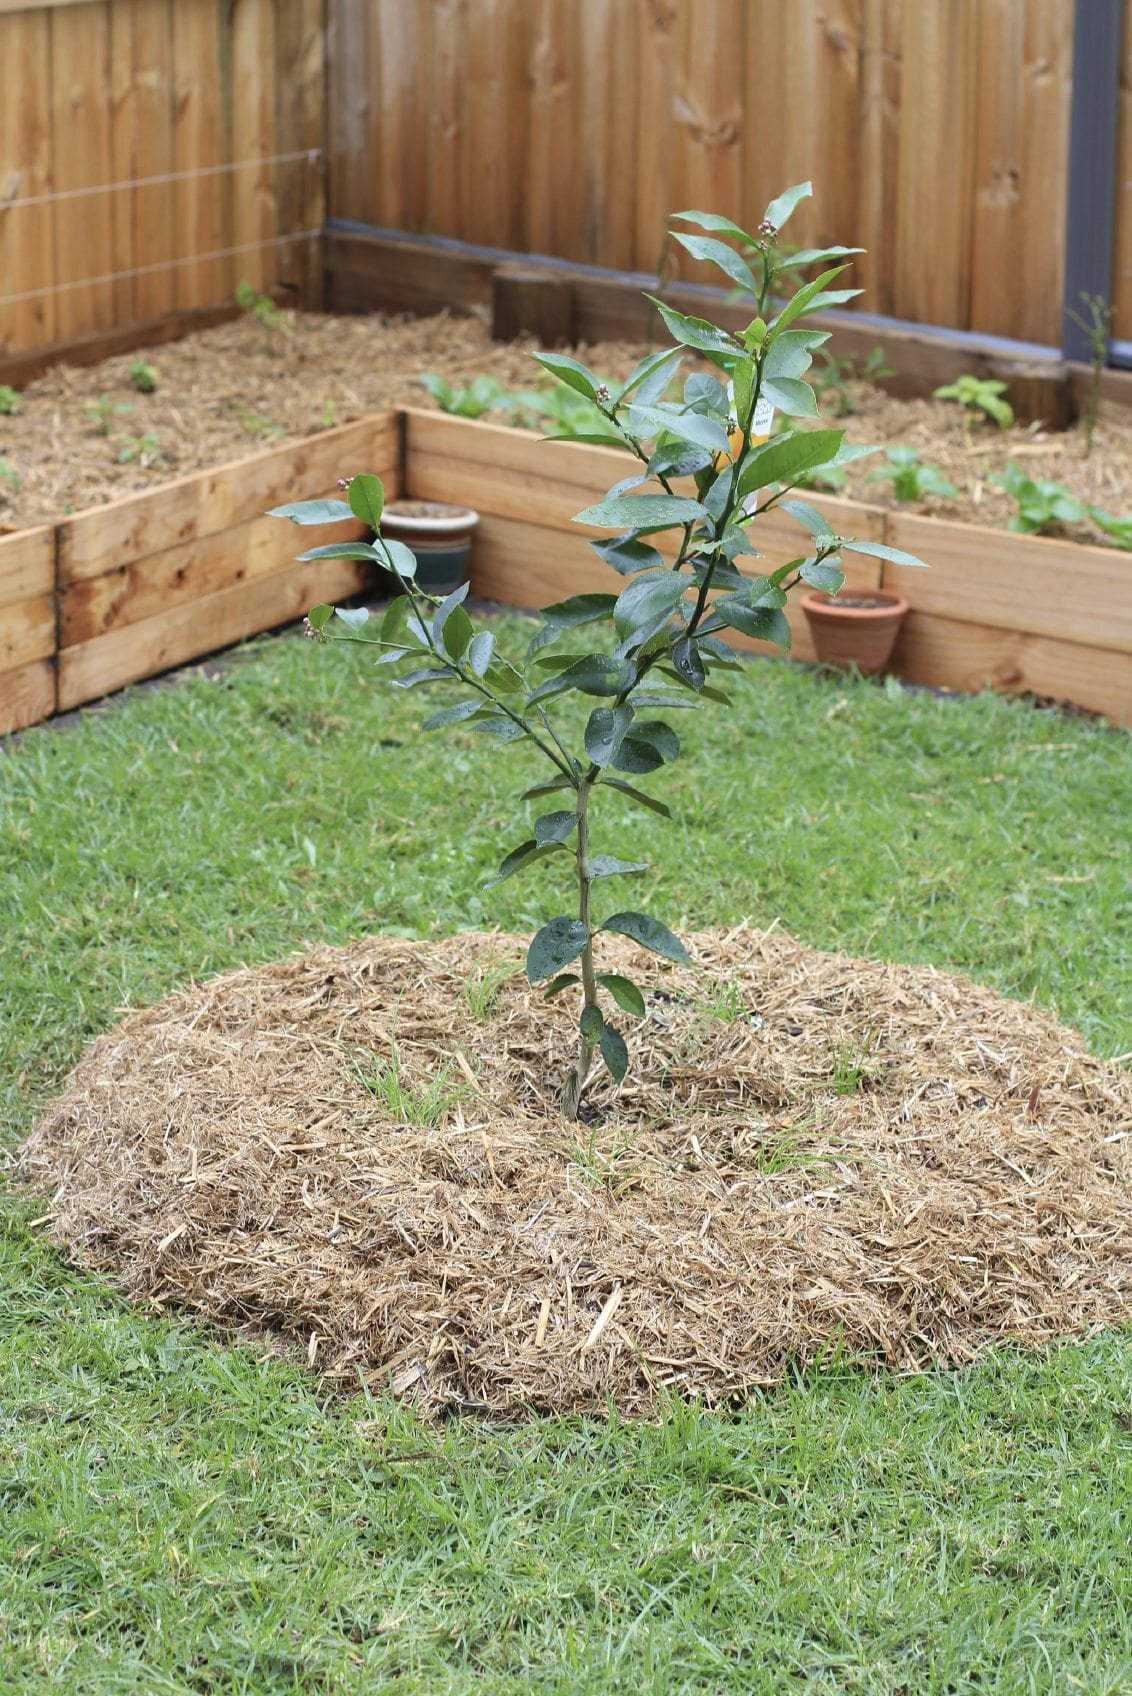 Simphome.com fruit trees in garden design ideas for planting fruit trees in the year 2020 2021 2022